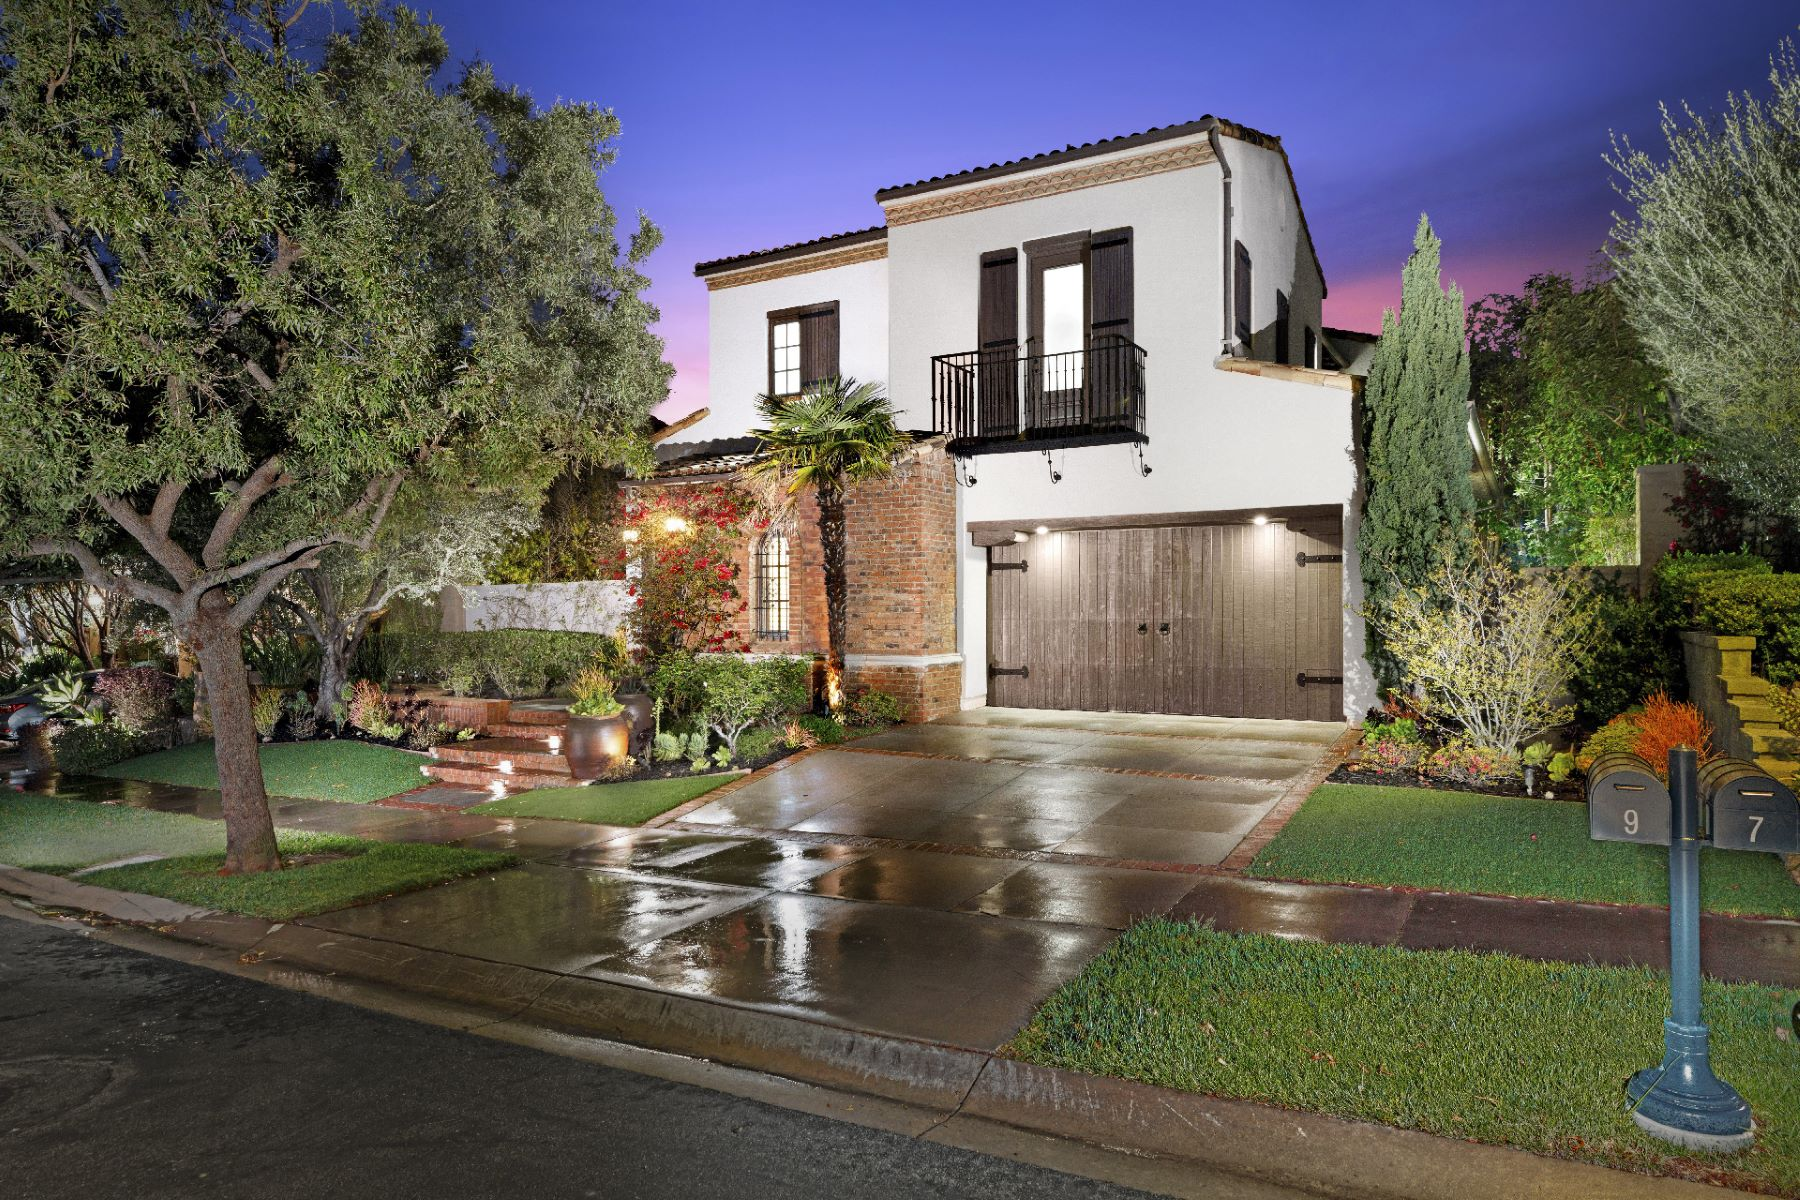 Single Family Homes for Active at 9 Observatory, Newport Coast, CA 92657 9 Observatory Newport Coast, California 92657 United States